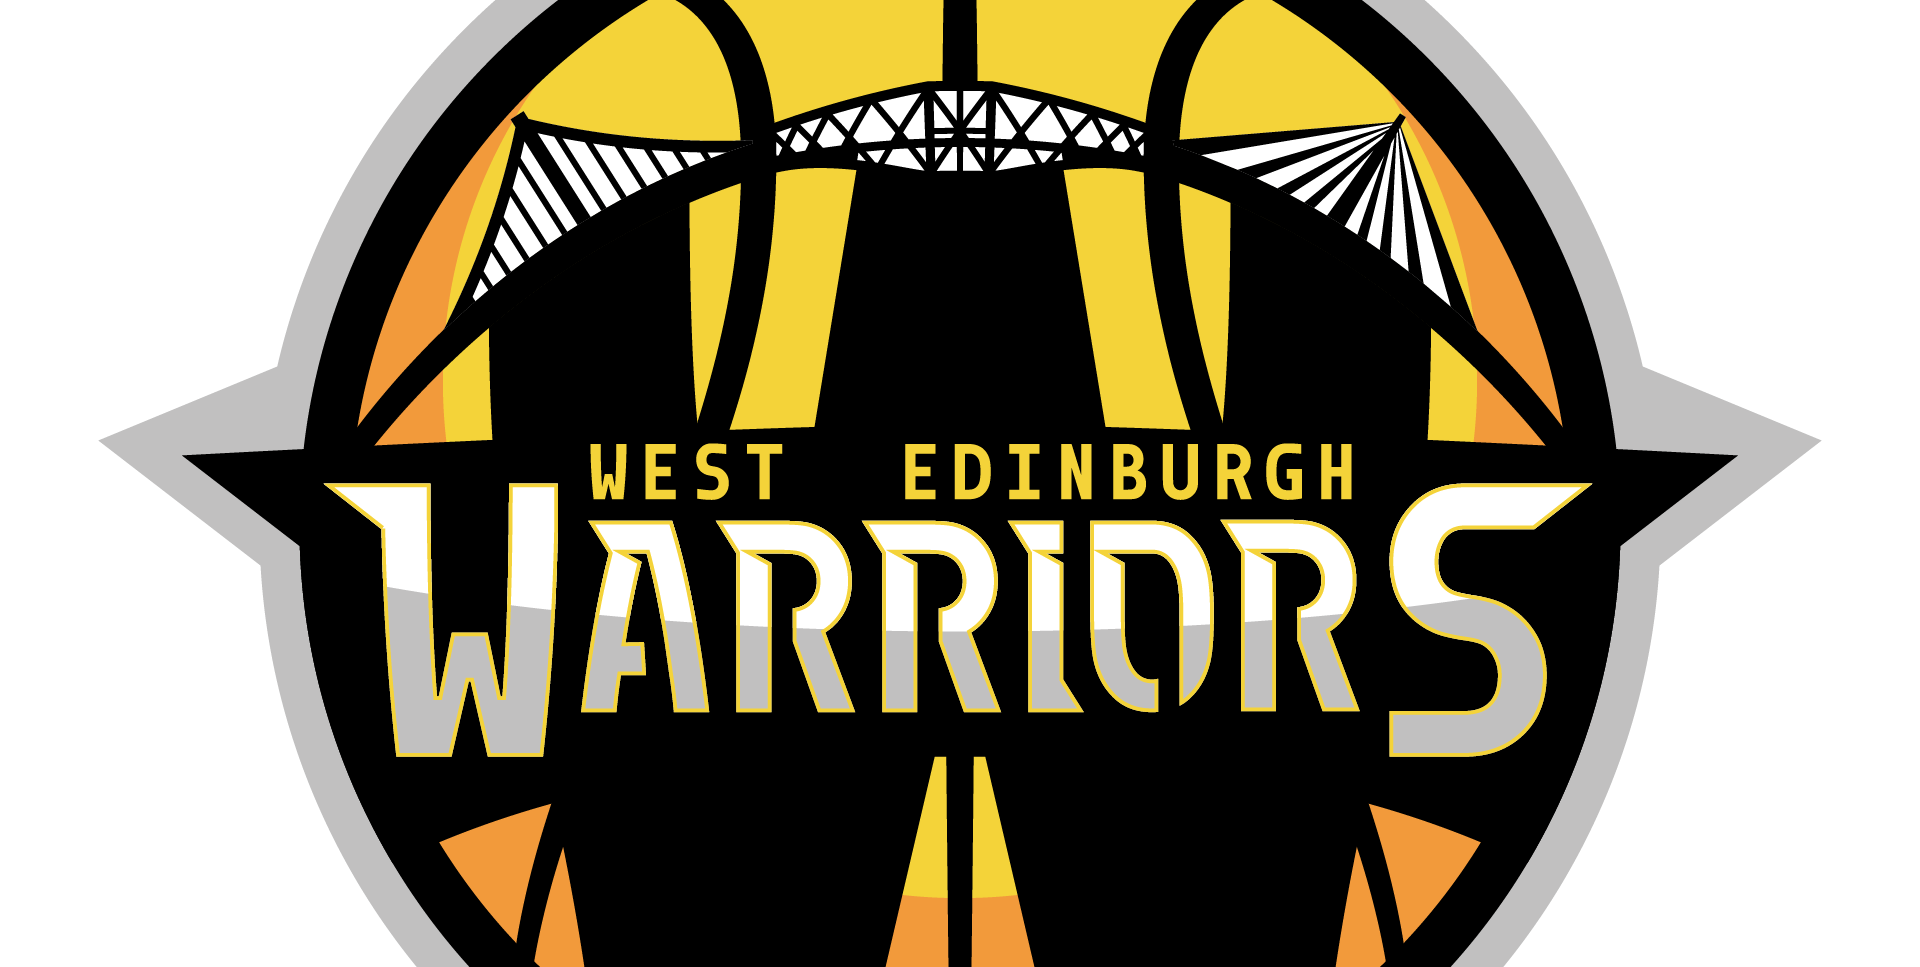 West Edinburgh Warriors